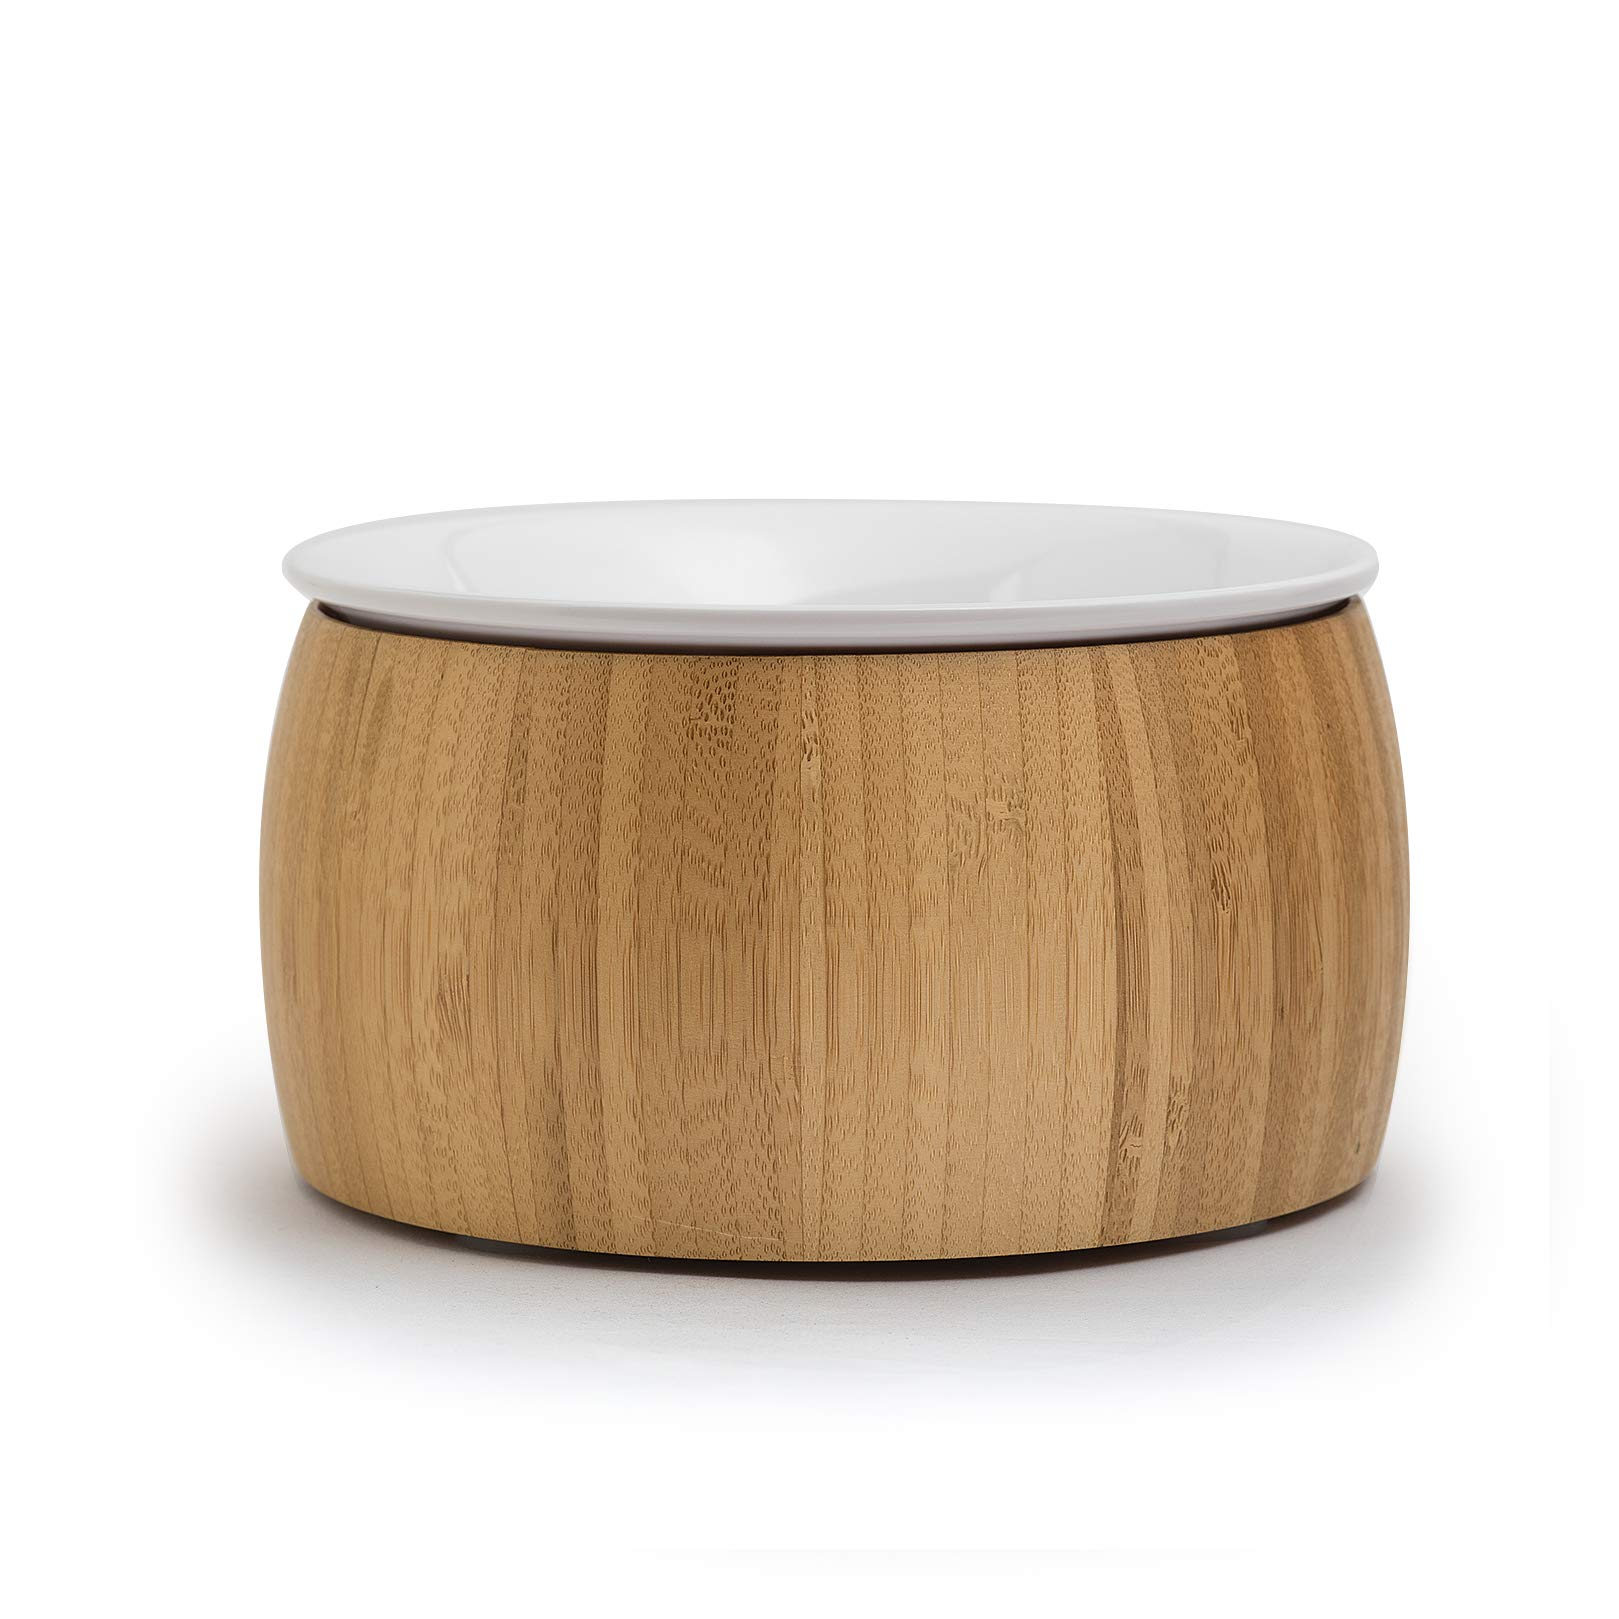 TigerLi Raised Cat Bowl with Nature Bamboo Stand with (Ceramic) Bowl 6'', Beautiful and Functional Design Pet Feeder